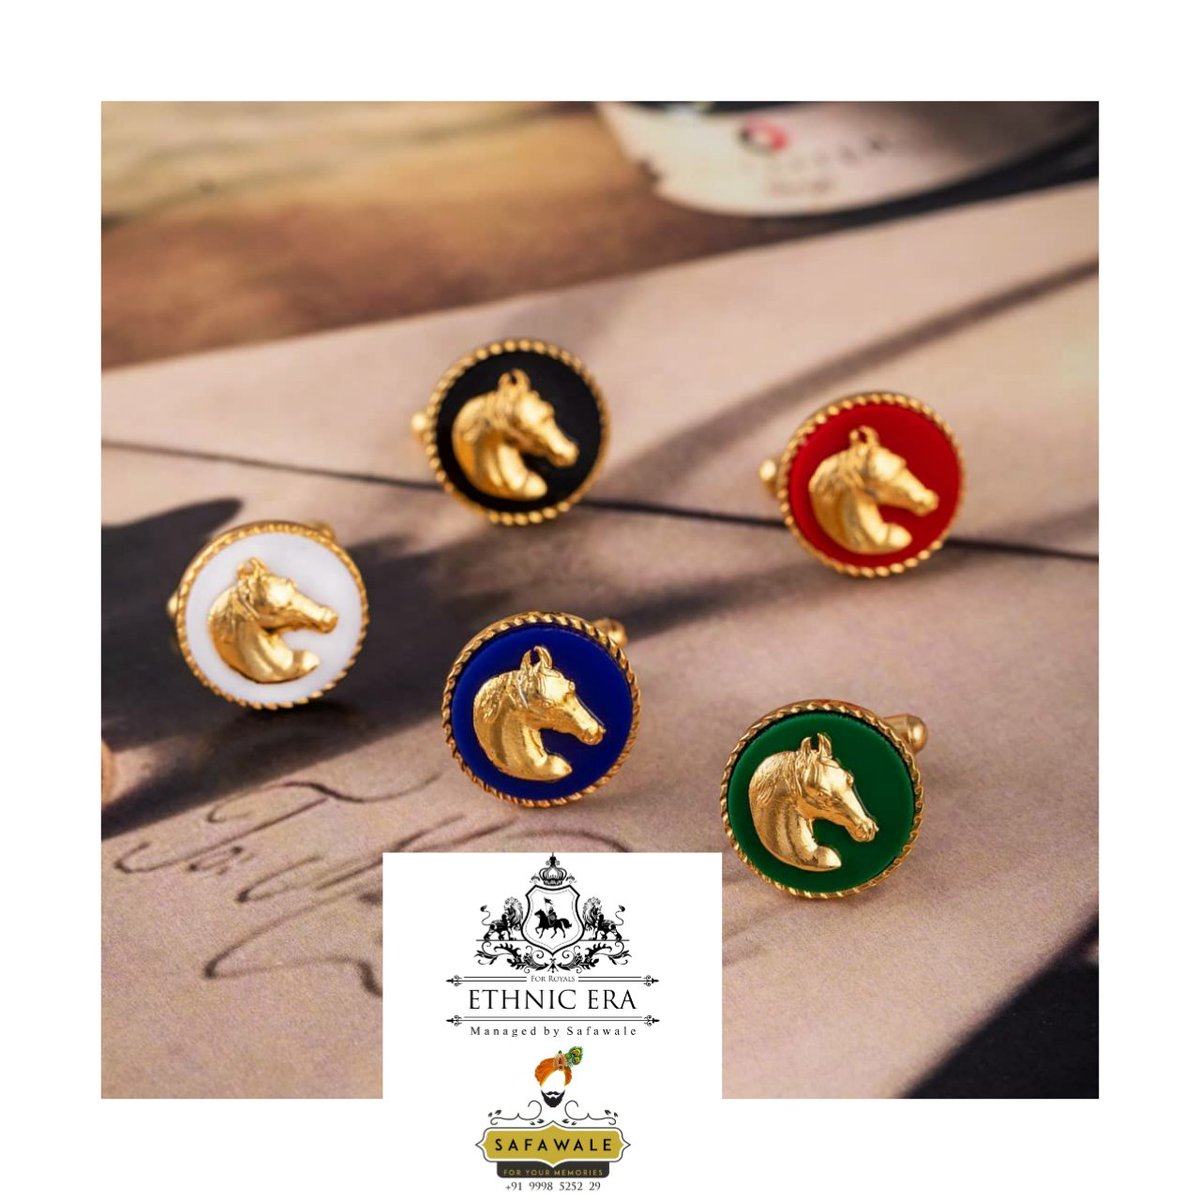 #cuffs #cufflinks #horse #equestrian #colors #red #gold#goldplated#accessories#mensfashion#fashiondesigner#shirt#suit#clothing#jewelry#menstyle#menswear#dapper##style#cufflinkstyle#accessories##bestman#giftsforhim#rajput#rajgharana #ethniceraforroyals https://t.co/XAzIV4asiy